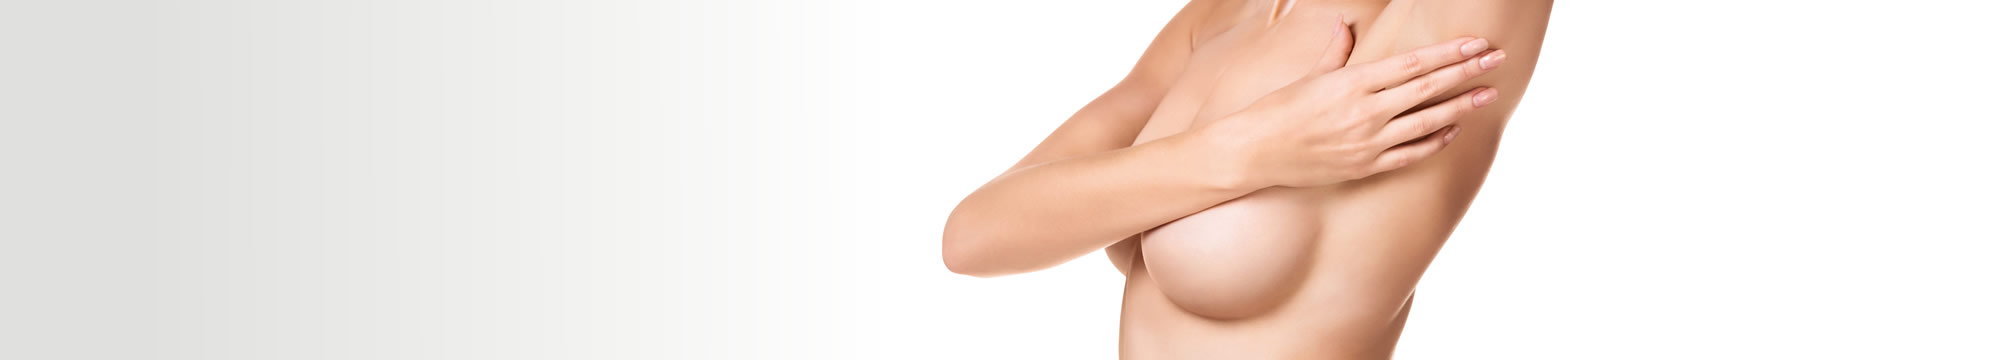 Naked woman's breasts covered with a hand